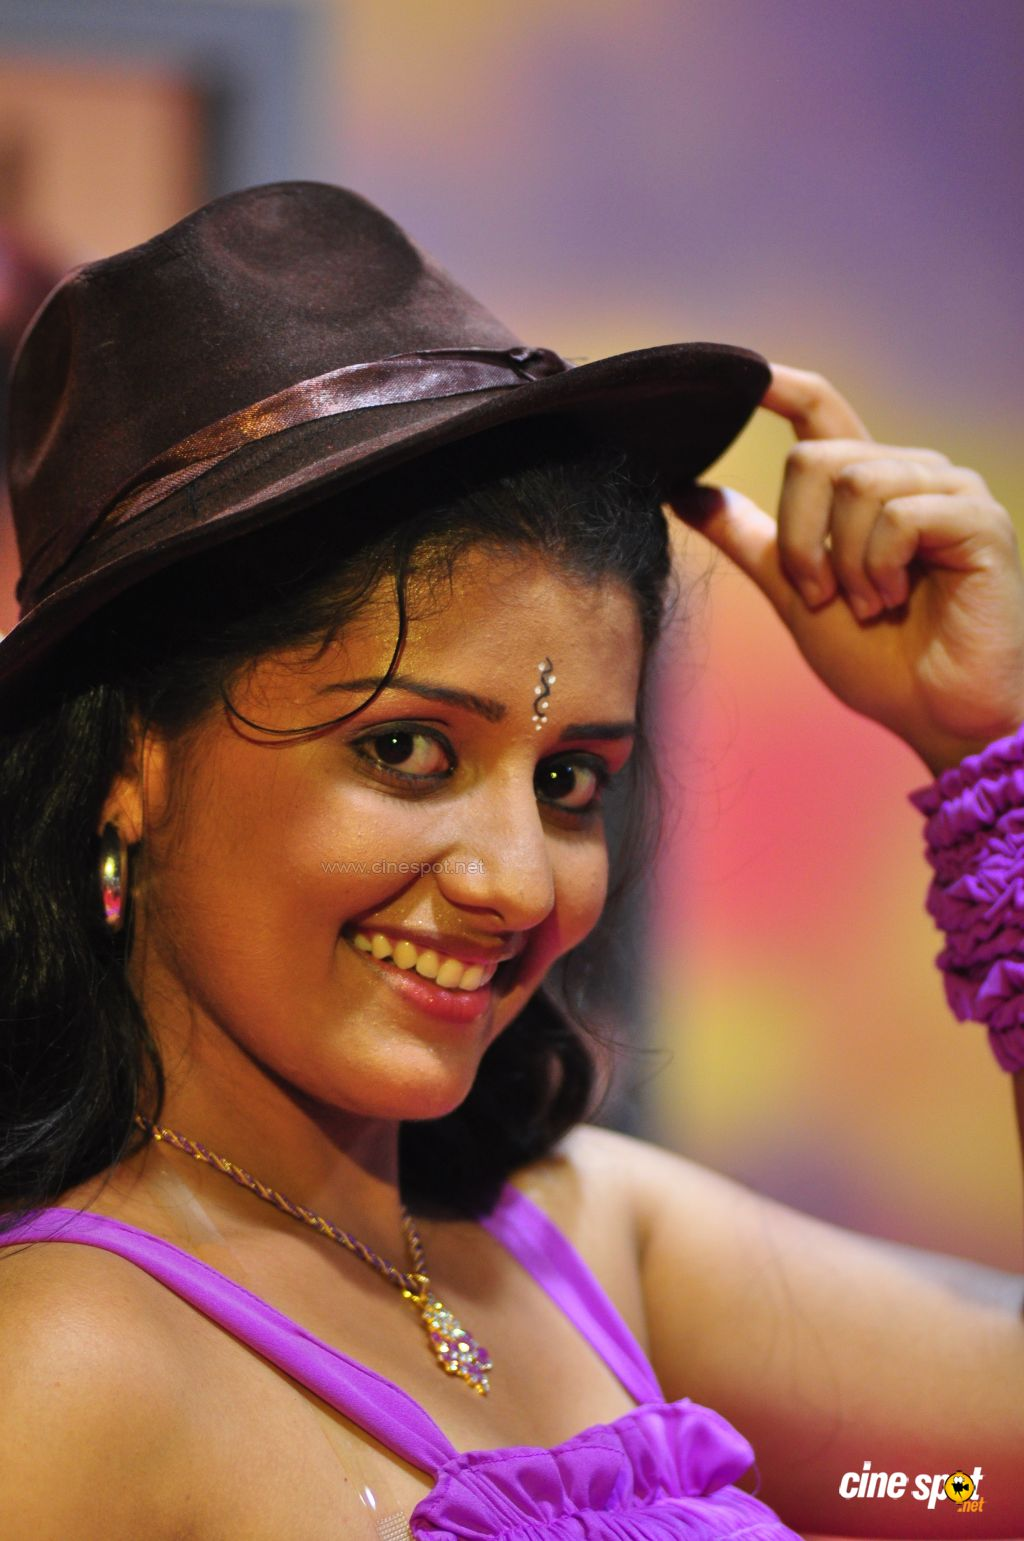 Kappal+Muthalali+Actress+New+Photos.jpg